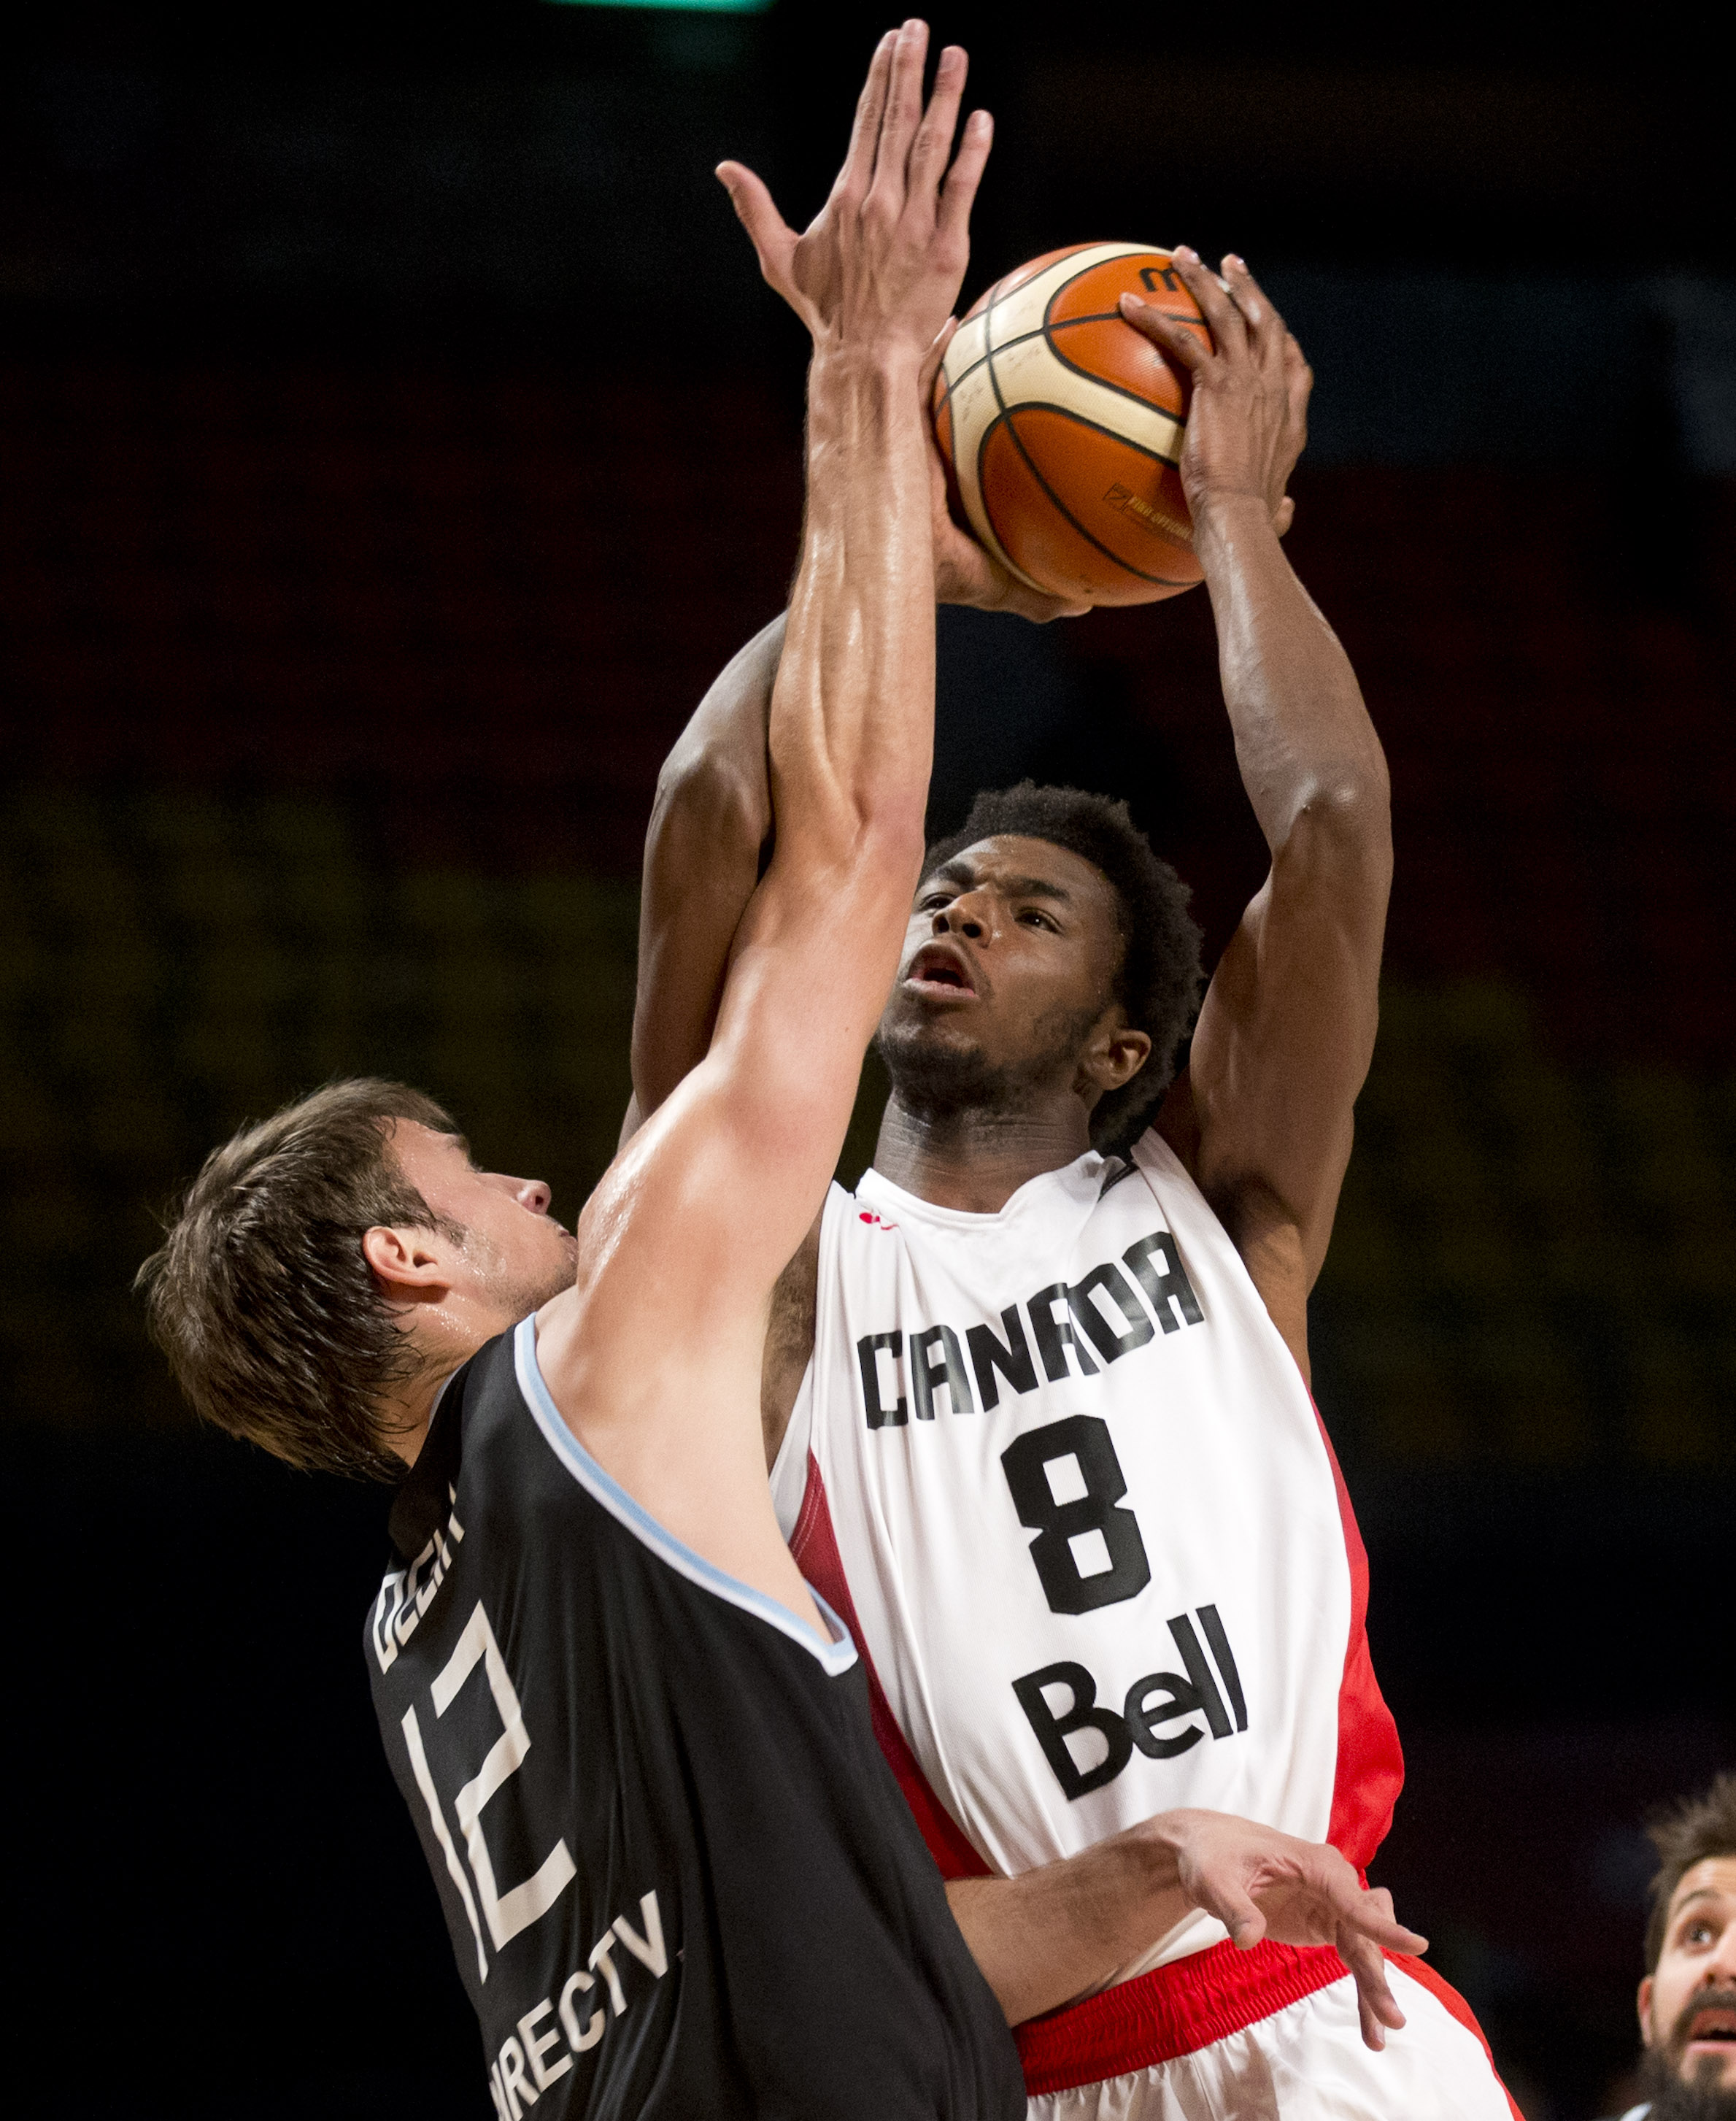 Canada's Andrew Wiggins, right, goes for a shot over Argentina's Marcos Delia during a FIBA Americas Championship basketball game in Mexico City, Tuesday, Sep. 1, 2015. (AP Photo/Eduardo Verdugo)